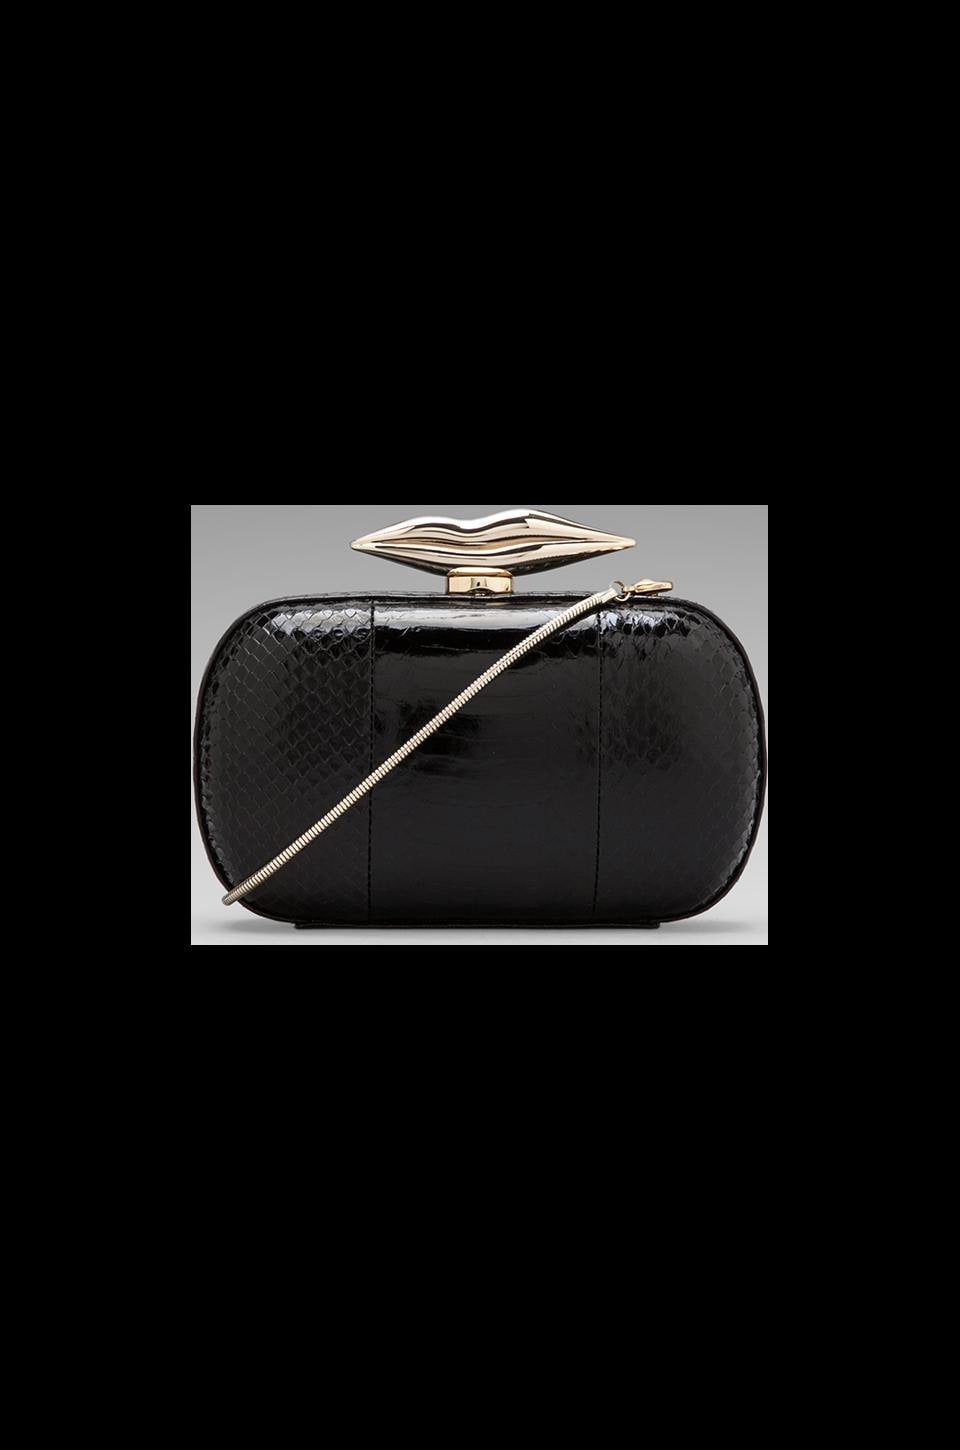 Diane von Furstenberg Flirty Minaudiere Watersnake Clutch in Black